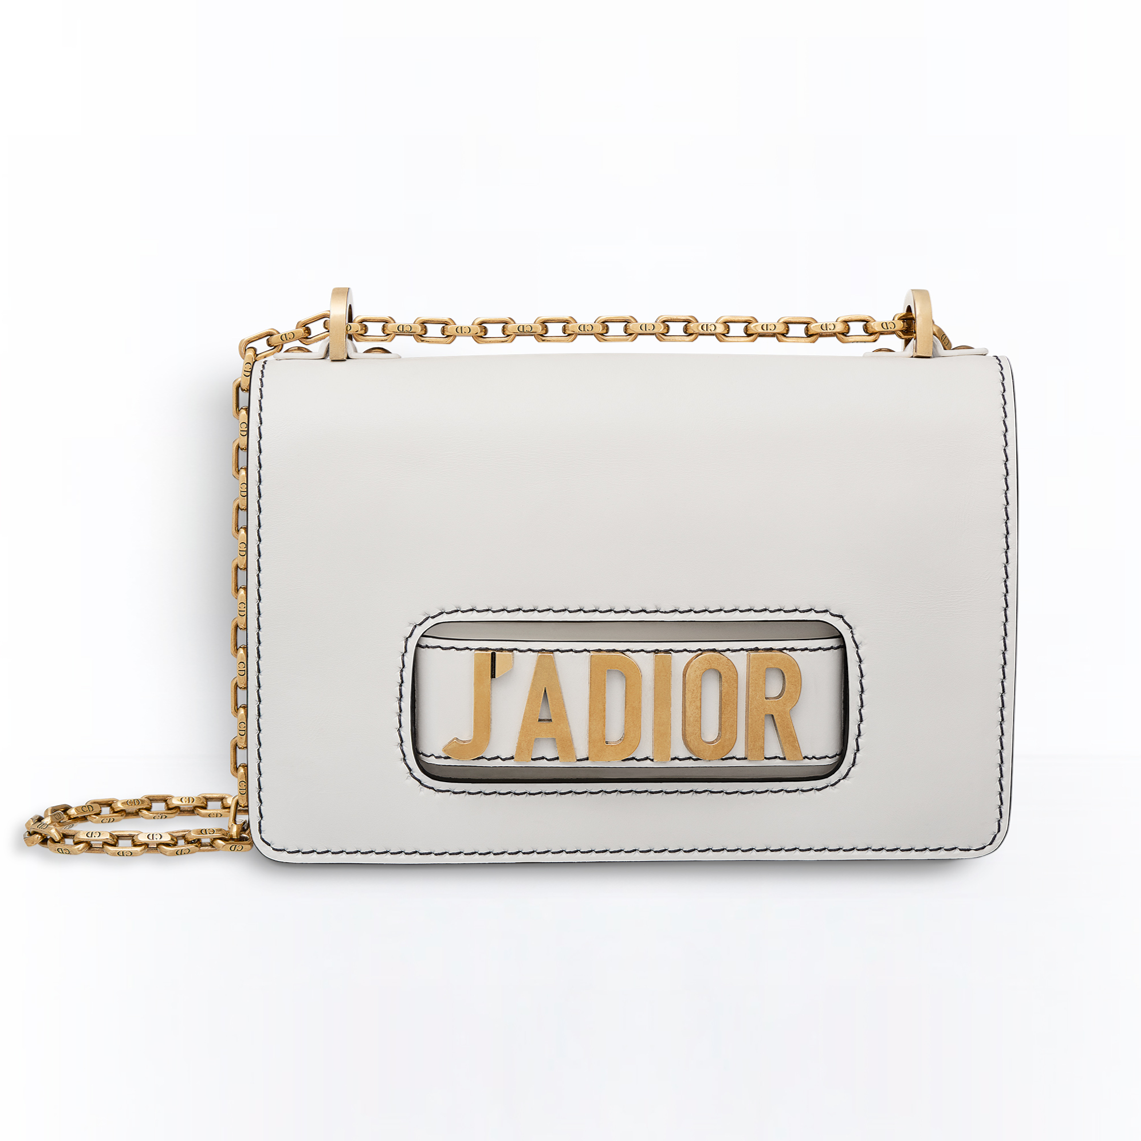 Dior J'adior bag white